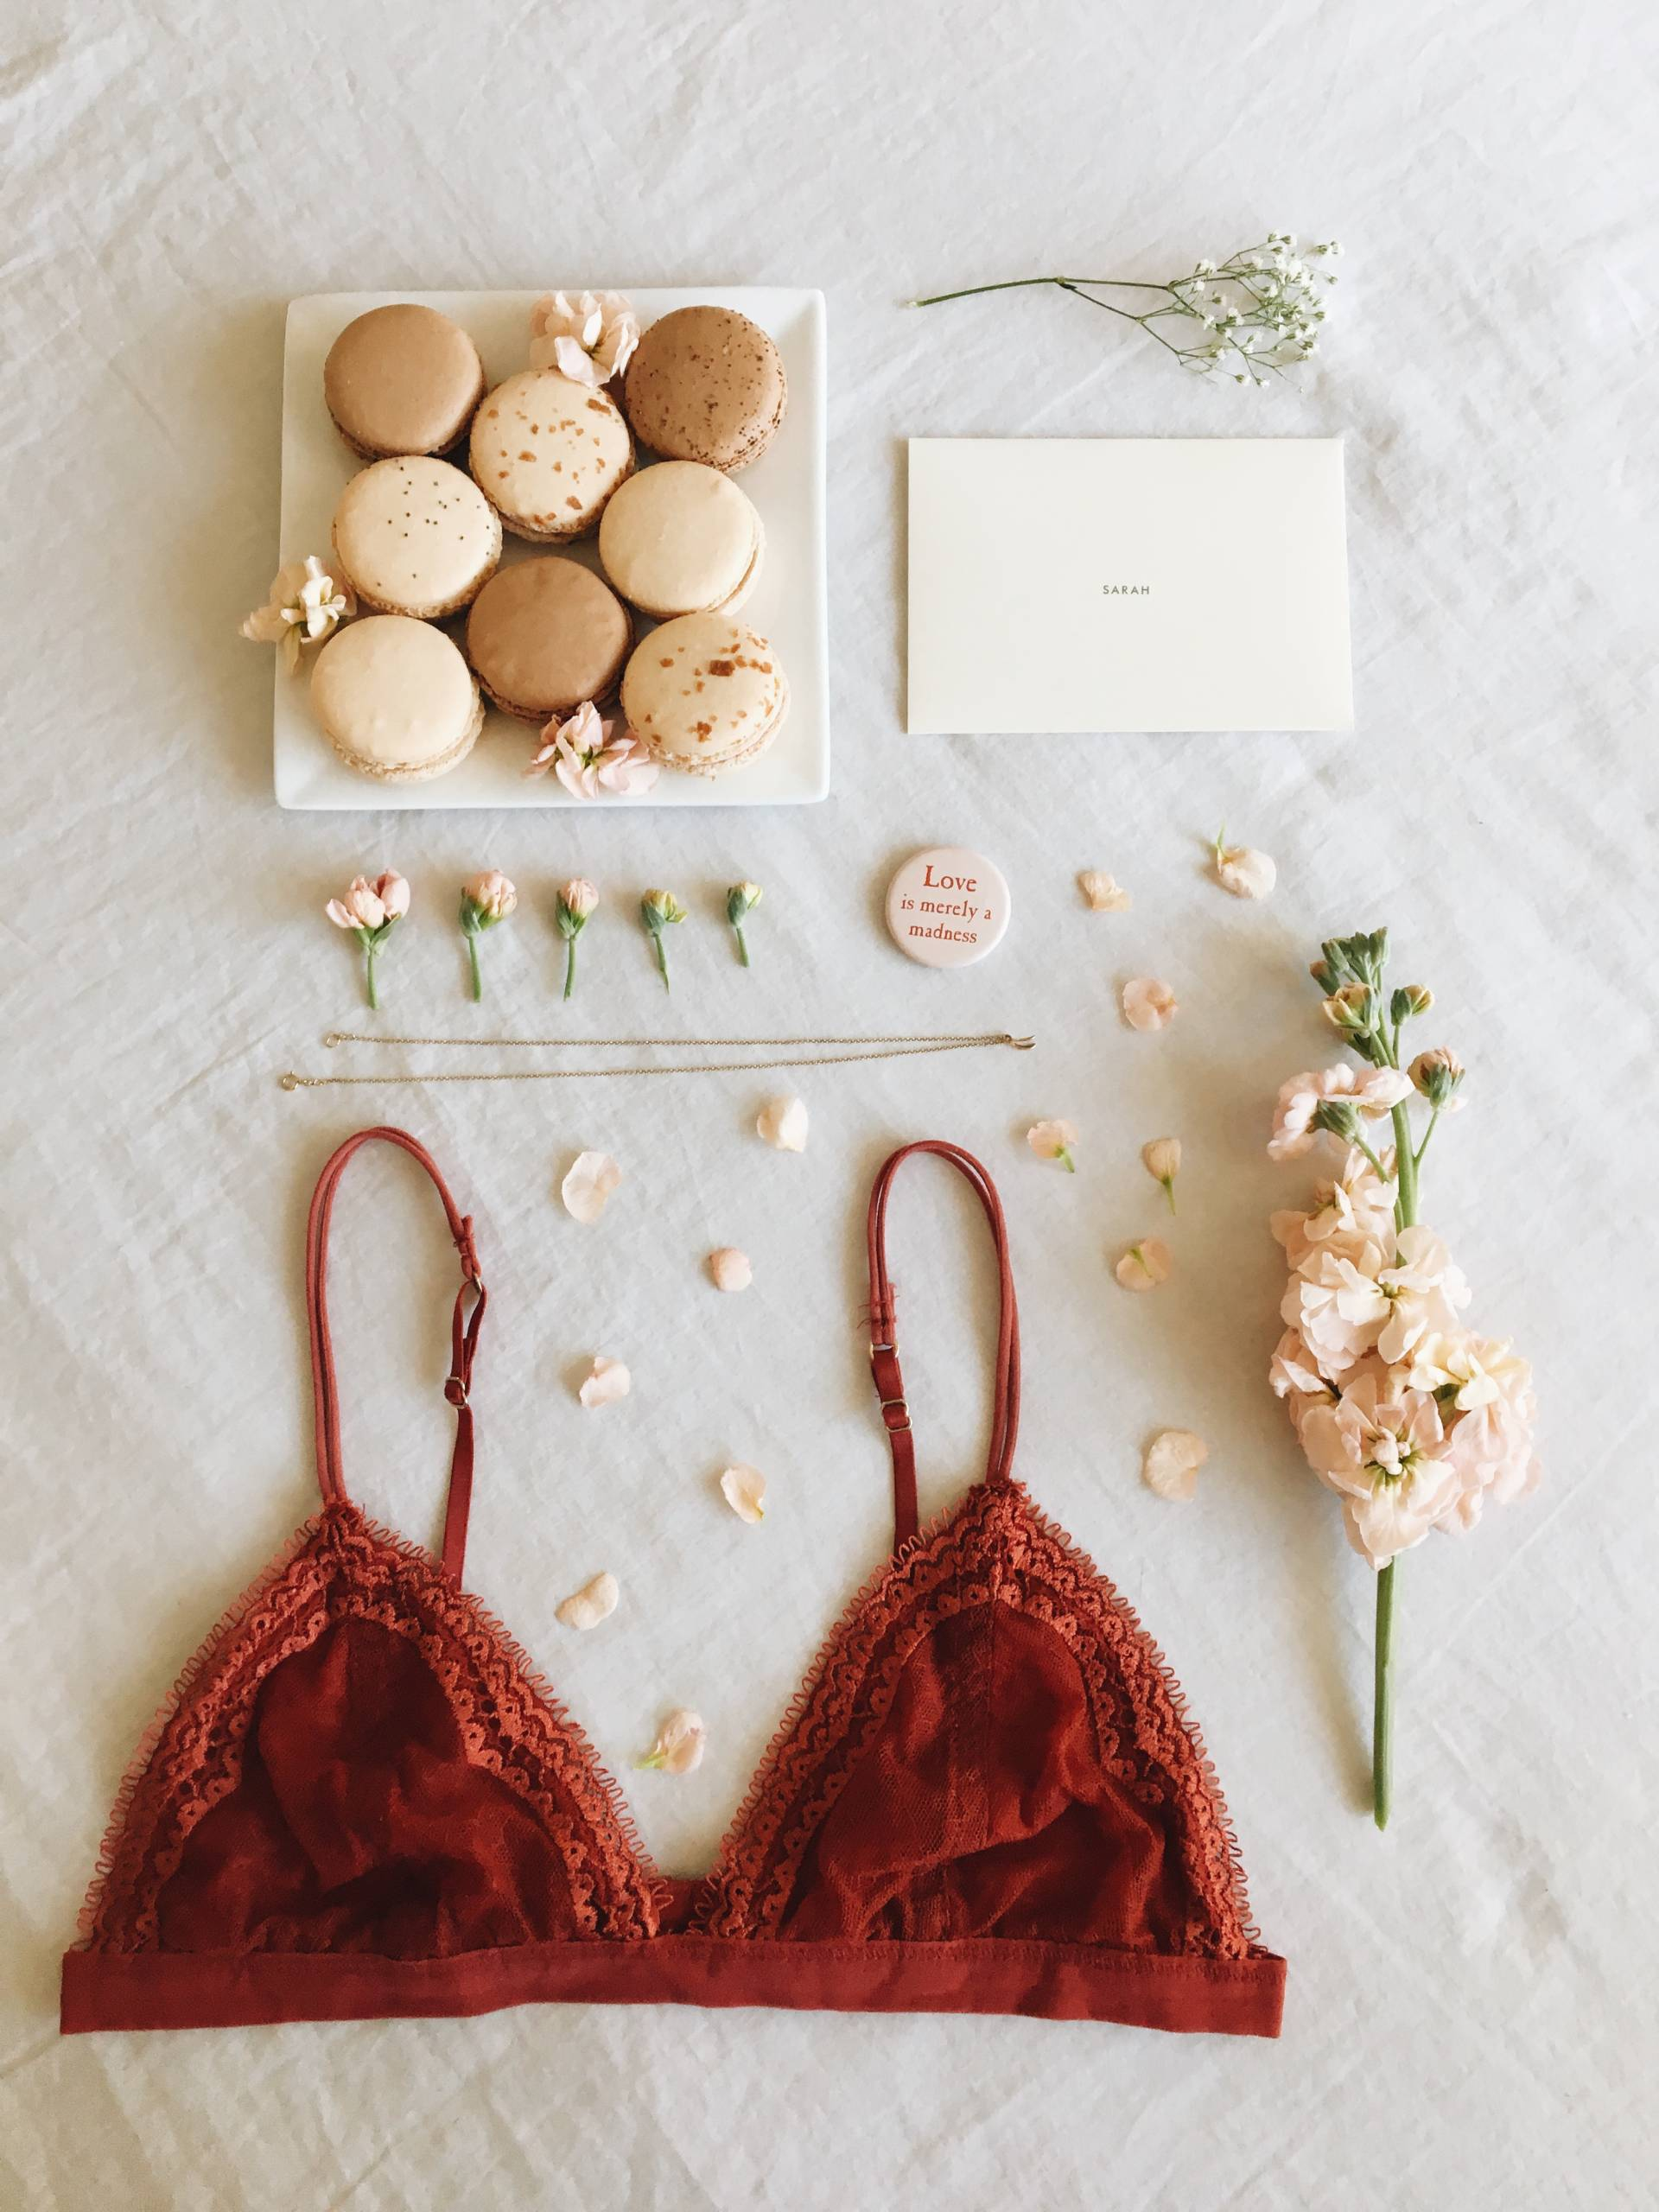 Ginger Elizabeth macarons, flowers, and an Urban Outfitter's bralette